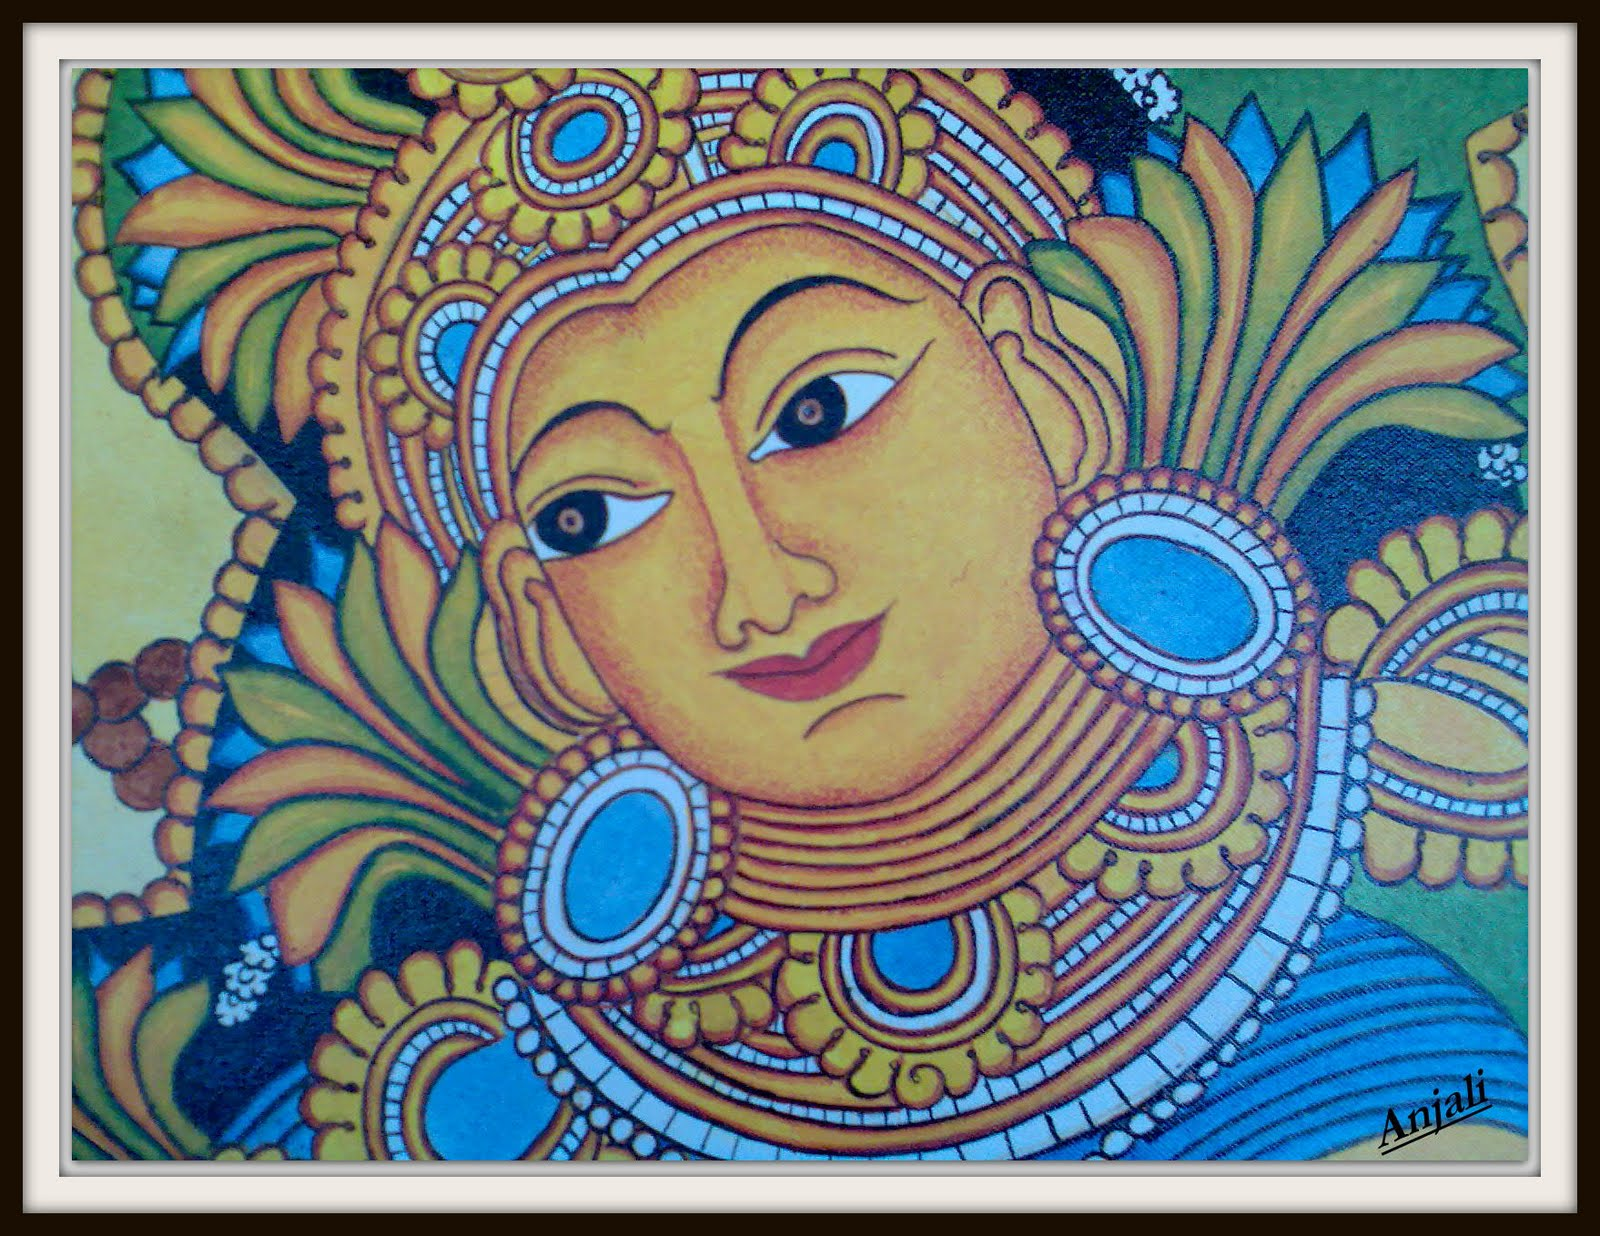 Mural Painting Designs Of Design Decor Disha An Indian Design Decor Blog